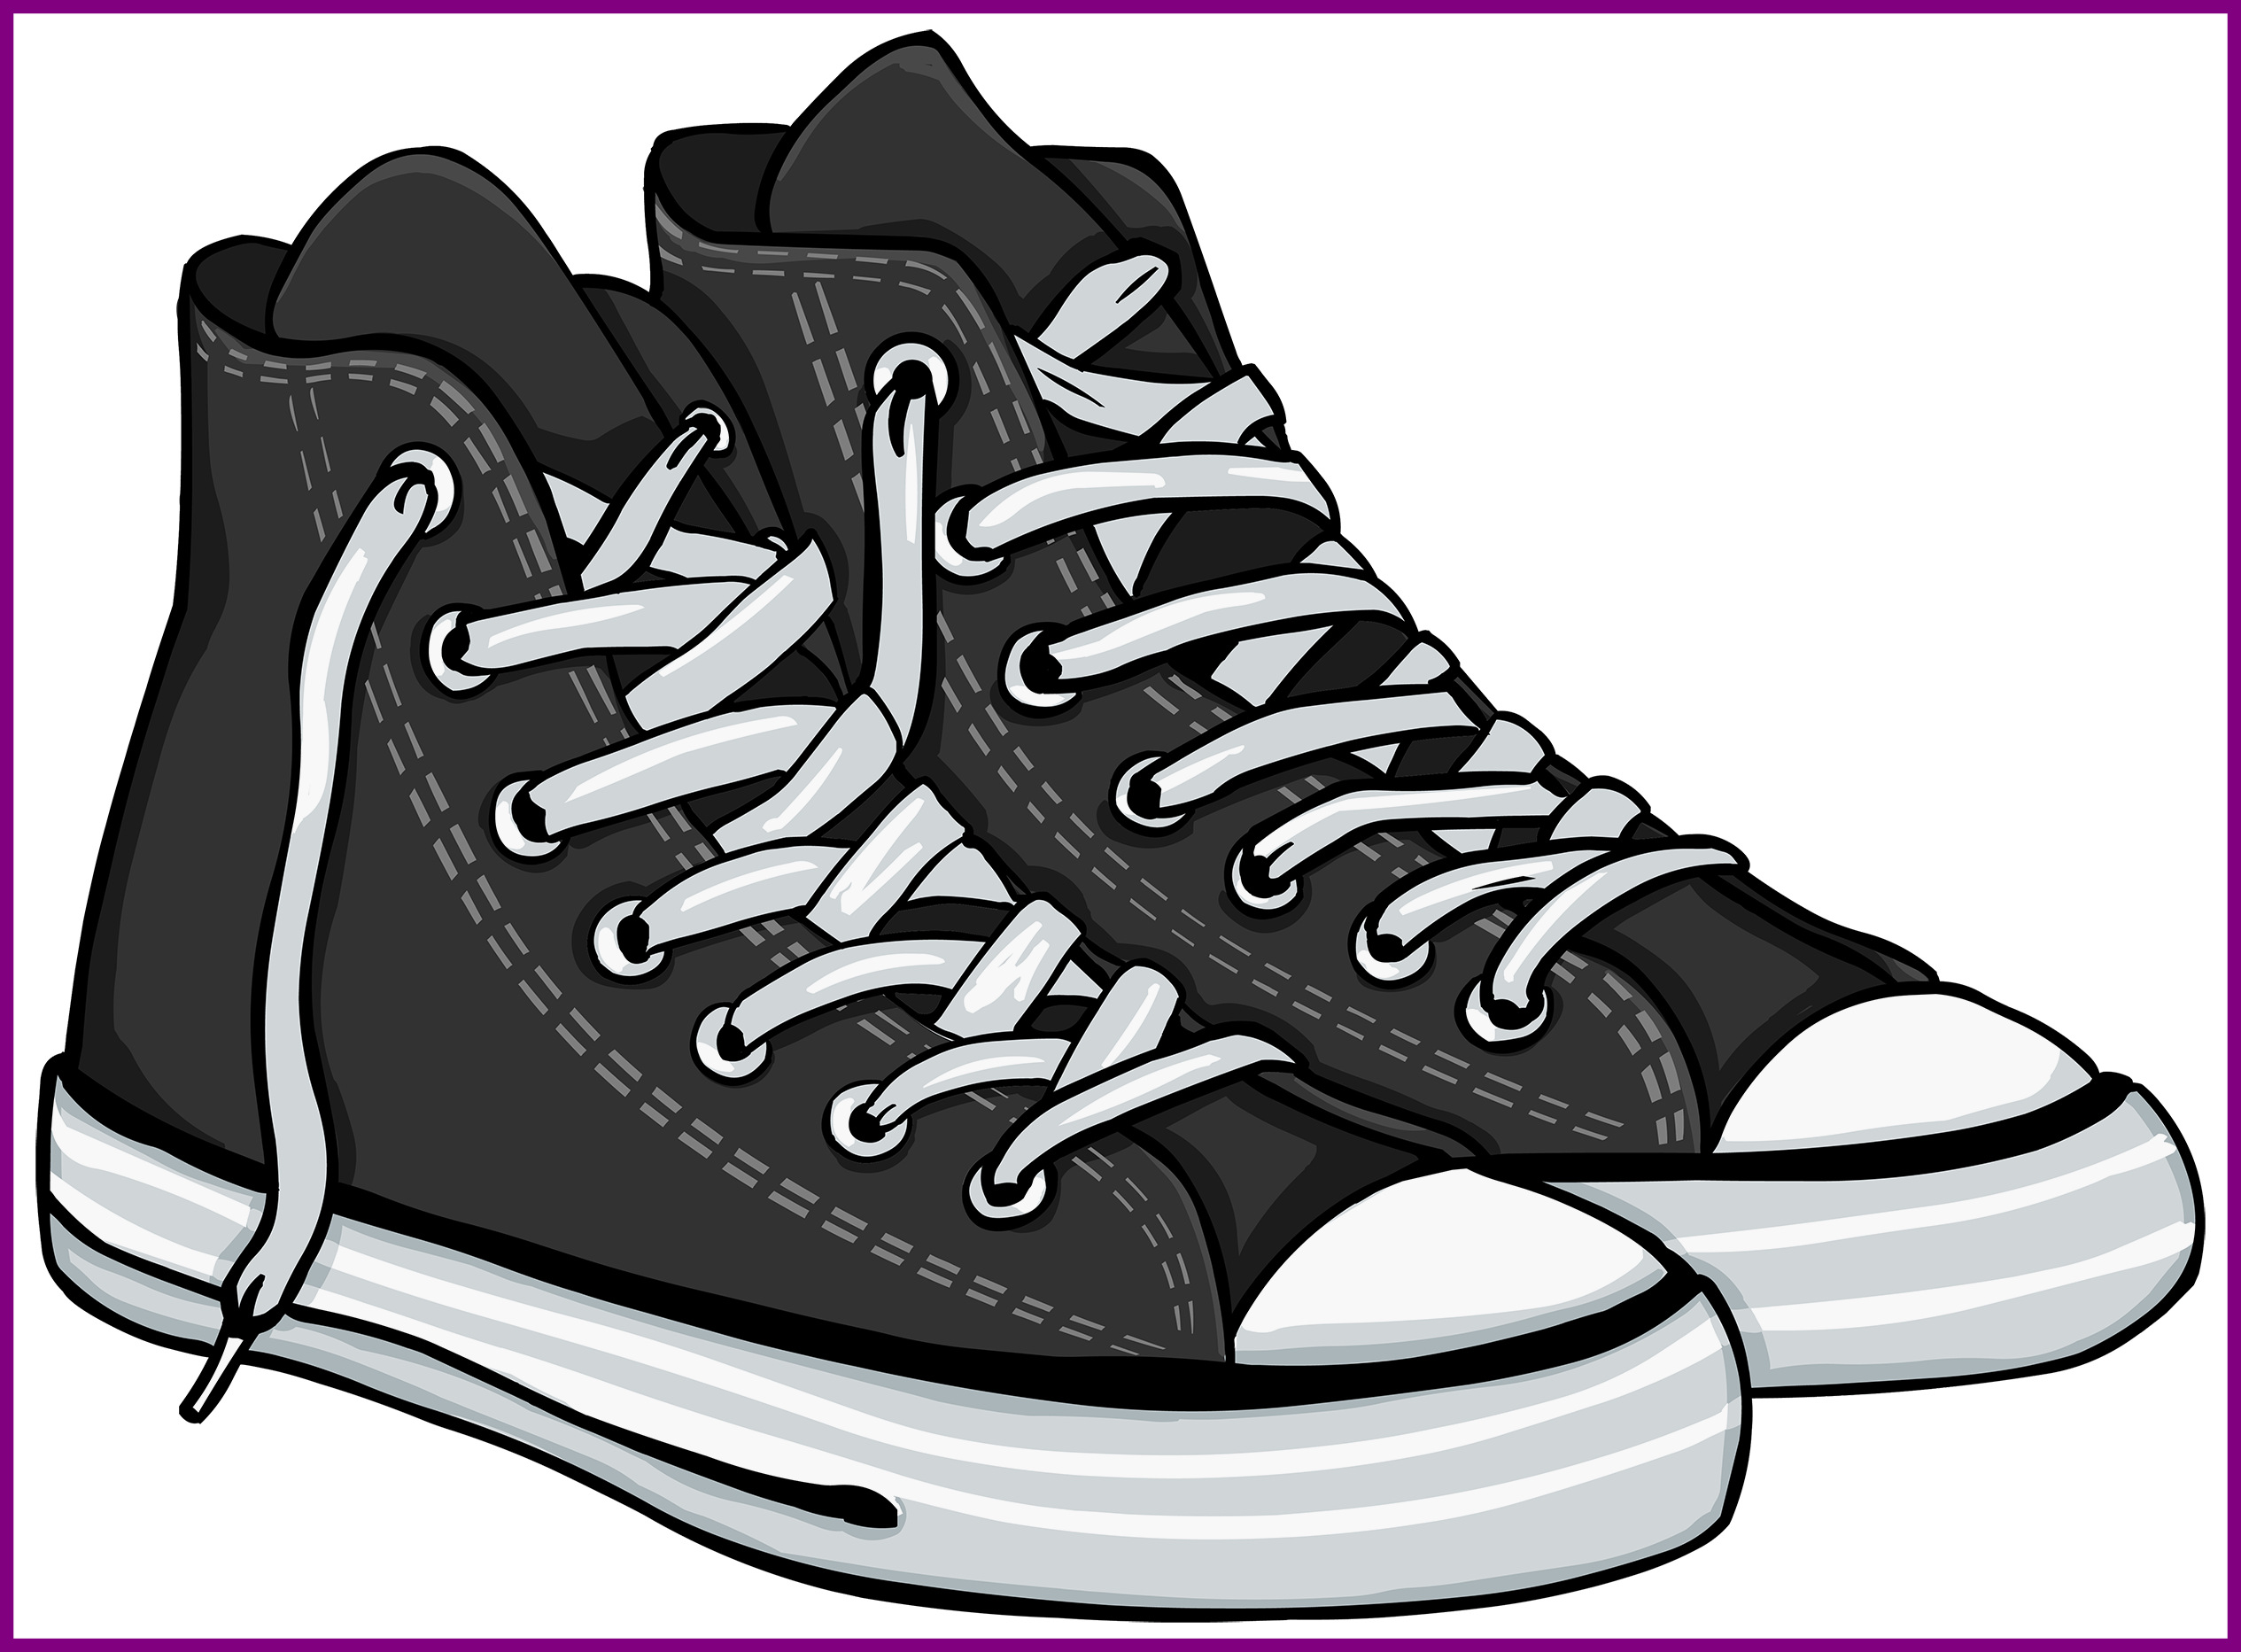 314 Tennis Shoes free clipart.